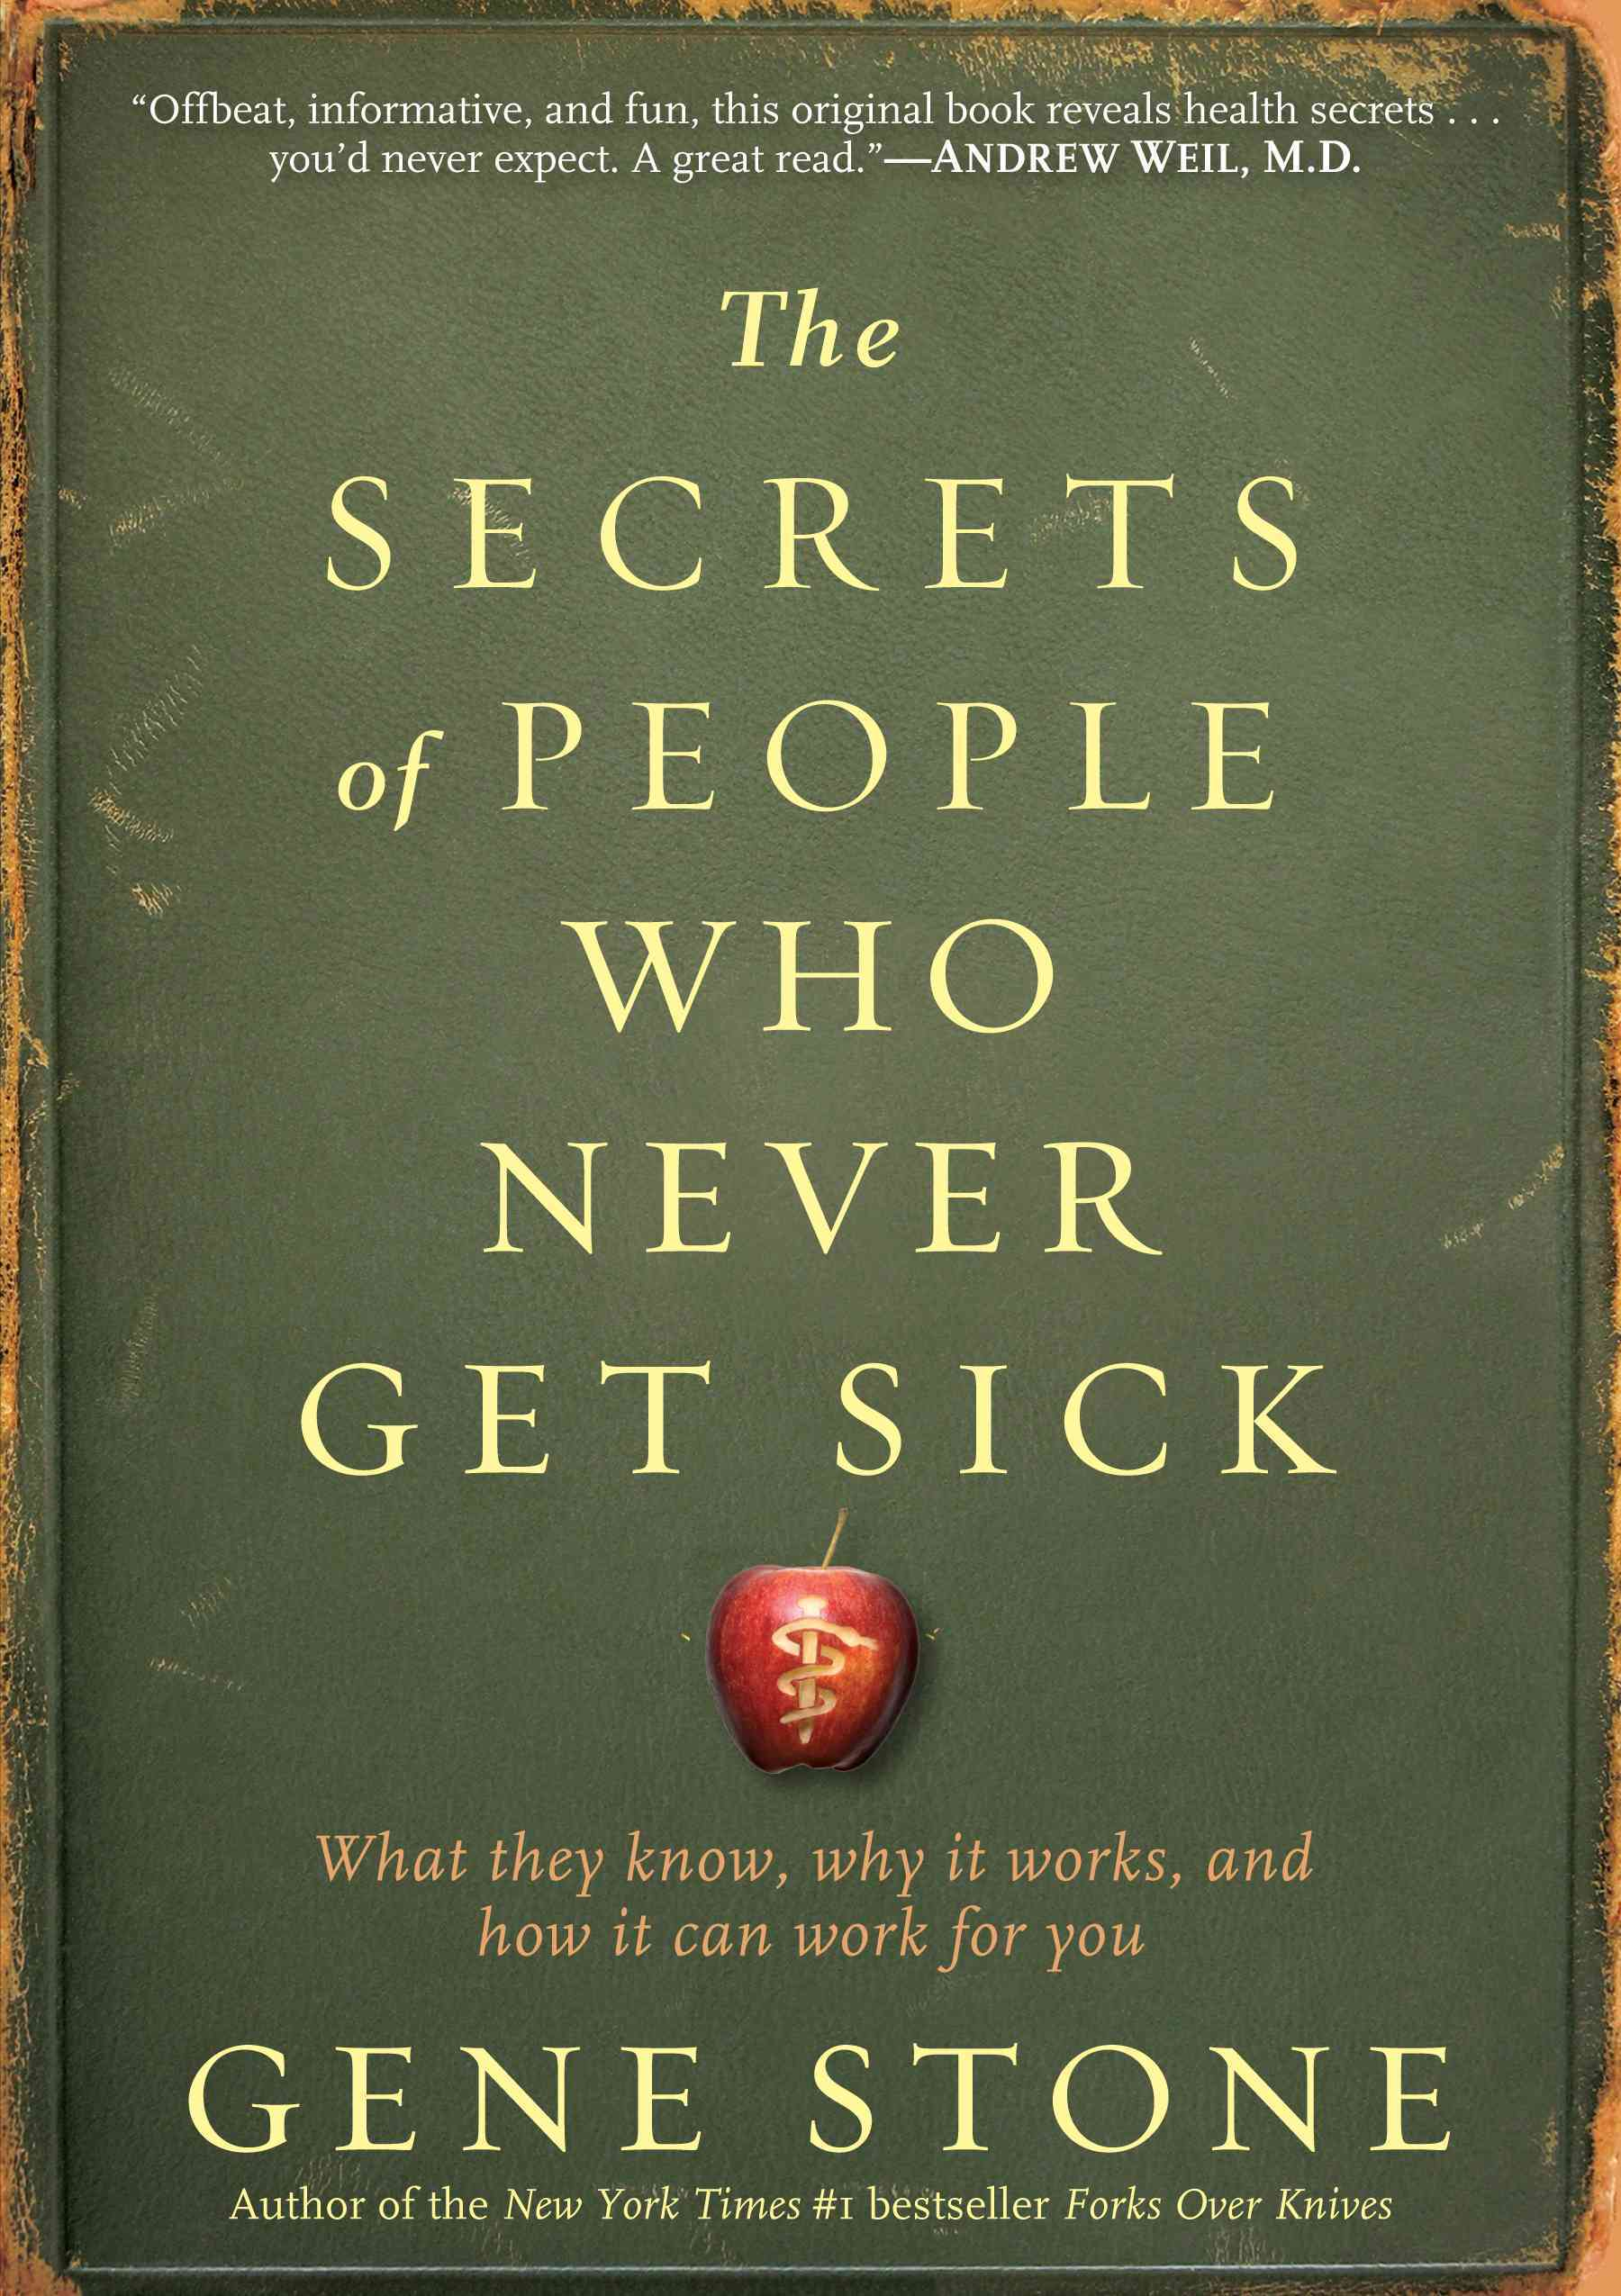 The Secrets of People Who Never Get Sick: What They Know, Why It Works, and How It Can Work for You (Paperback)